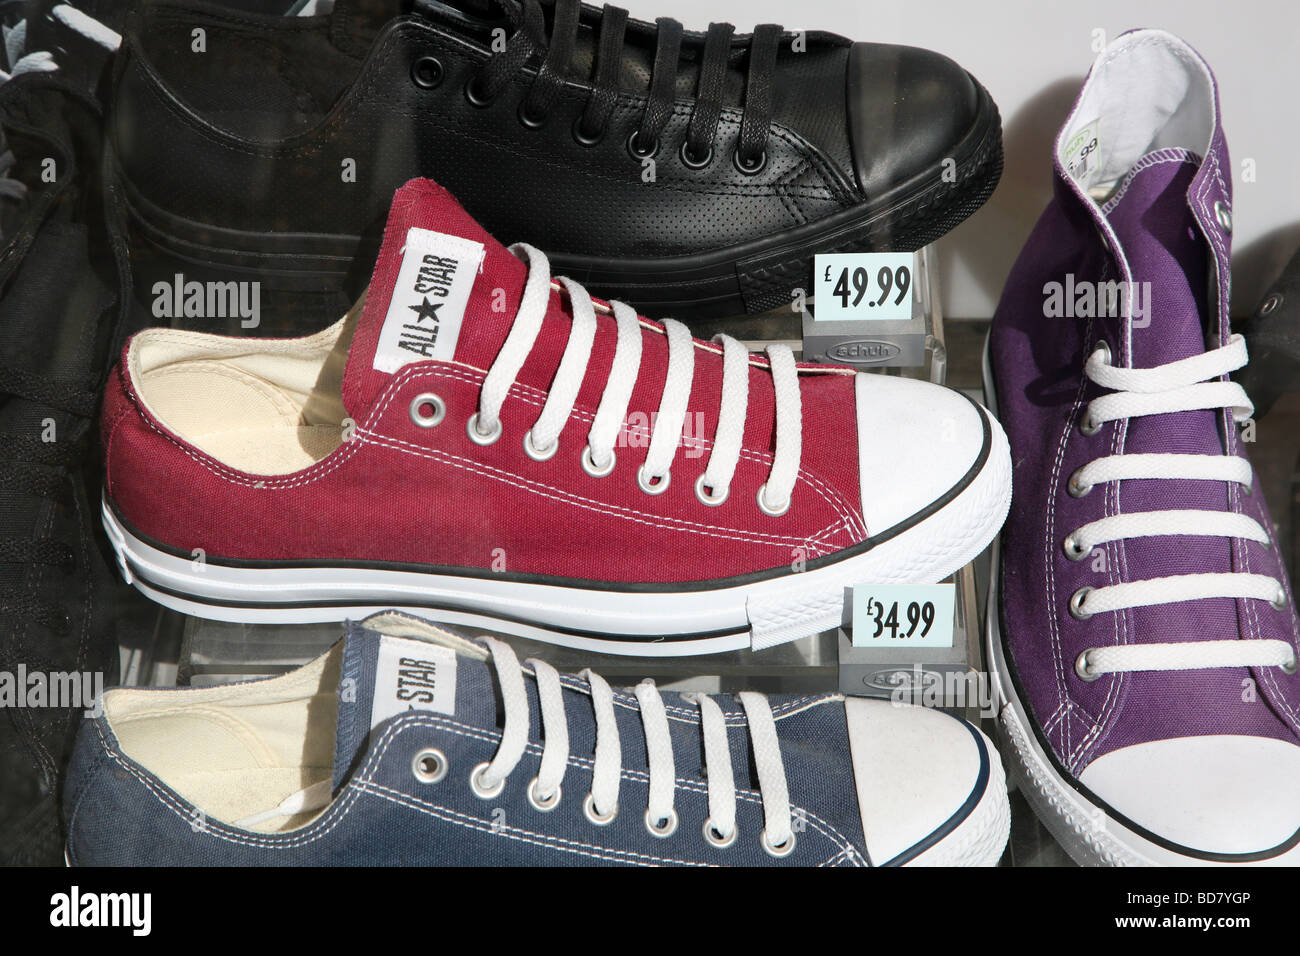 3396c6ad677a Trainers Shop Stock Photos   Trainers Shop Stock Images - Alamy